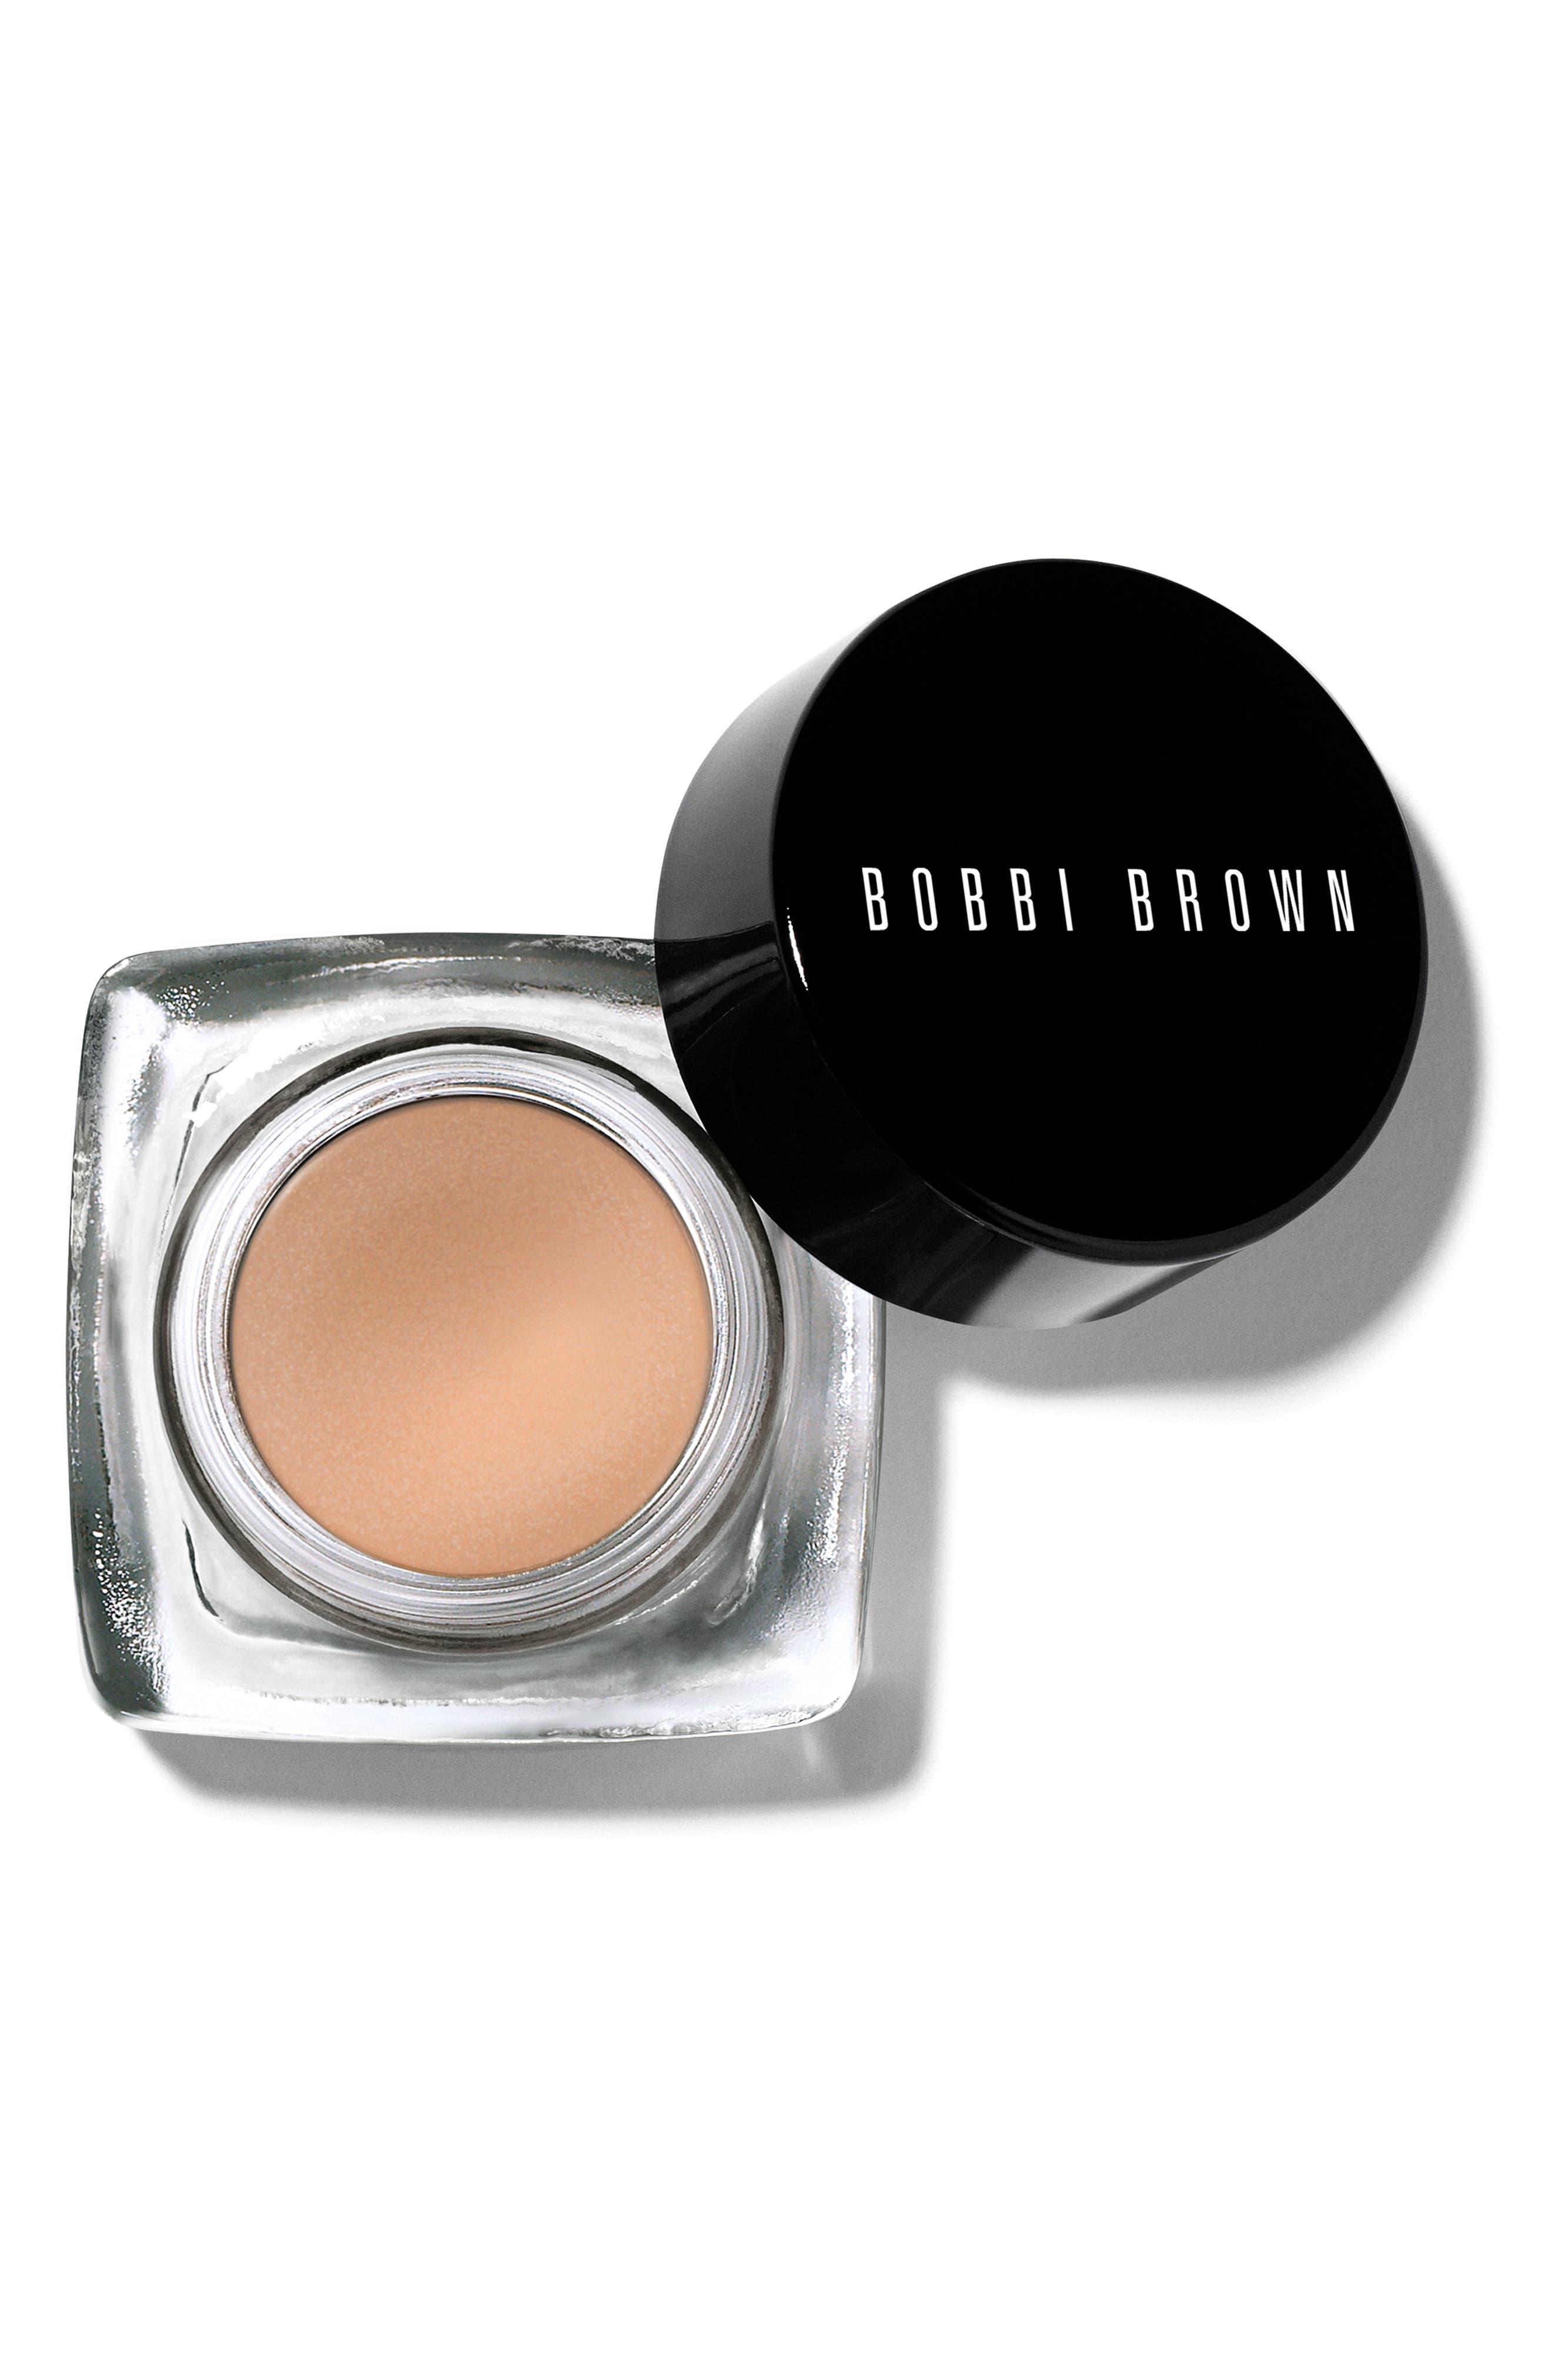 46b2e1555a97 Bobbi Brown Bestsellers  Best Makeup Products